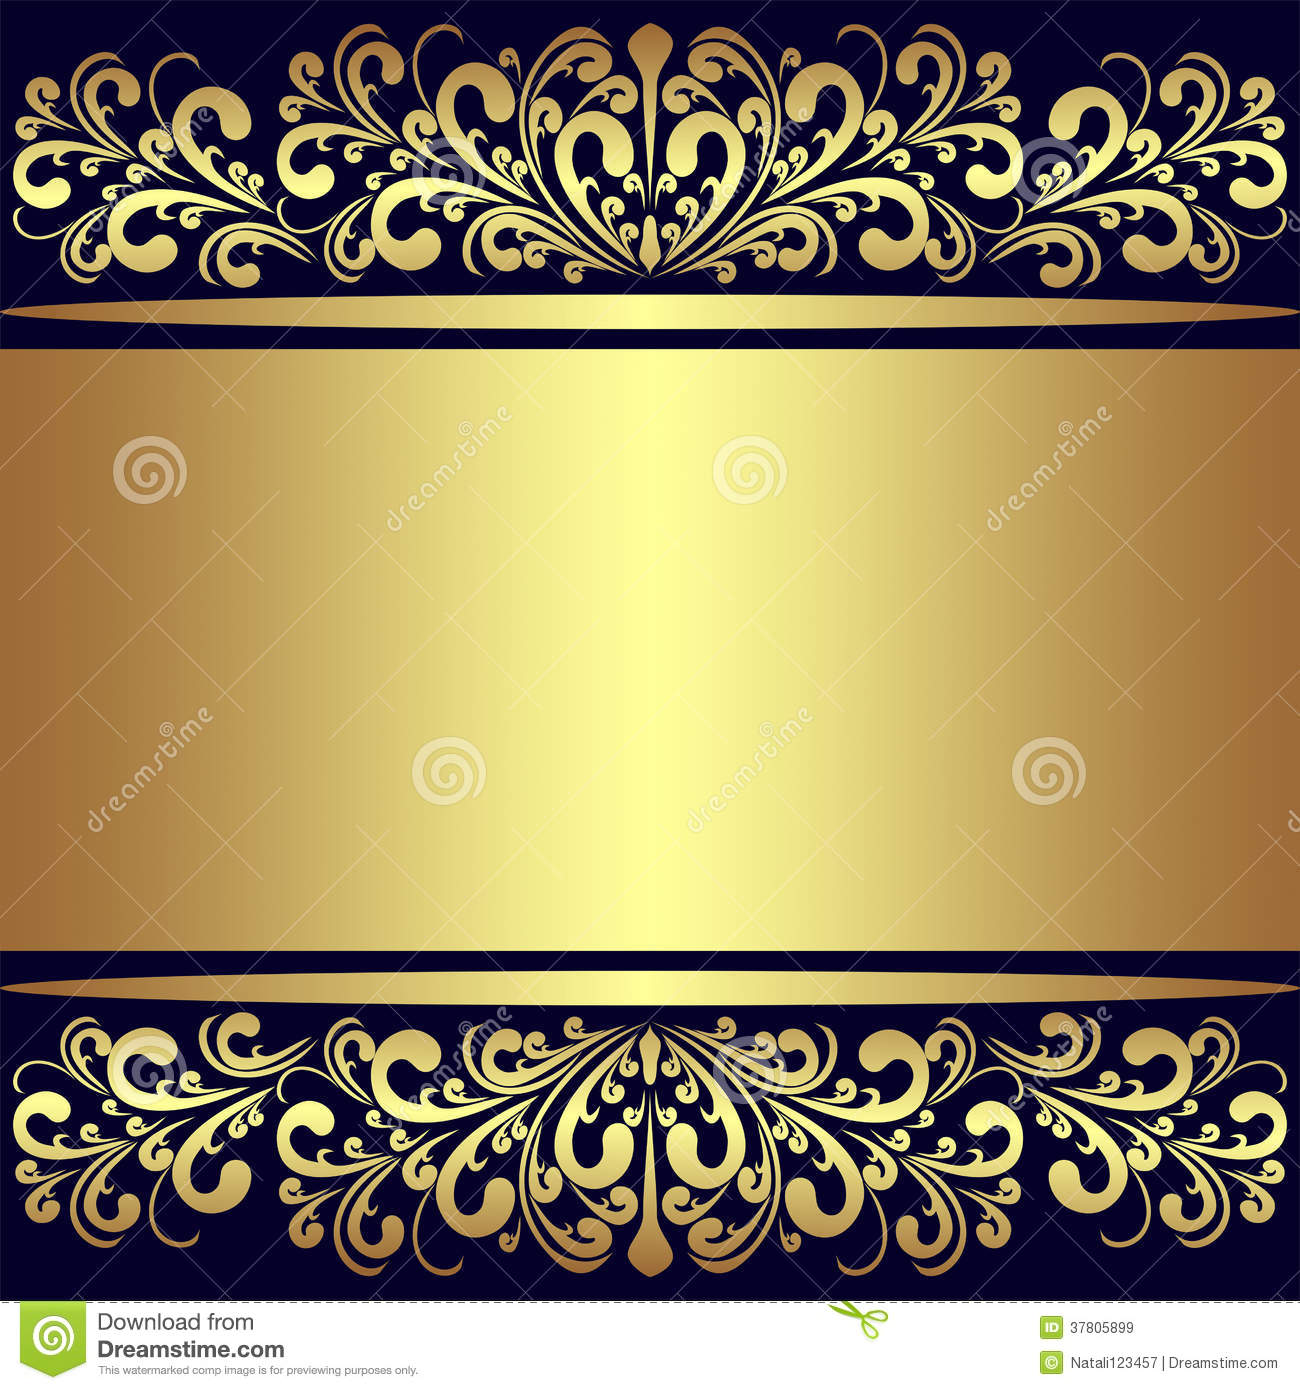 Luxury Background With Golden Royal Borders. Royalty Free Stock Images ...